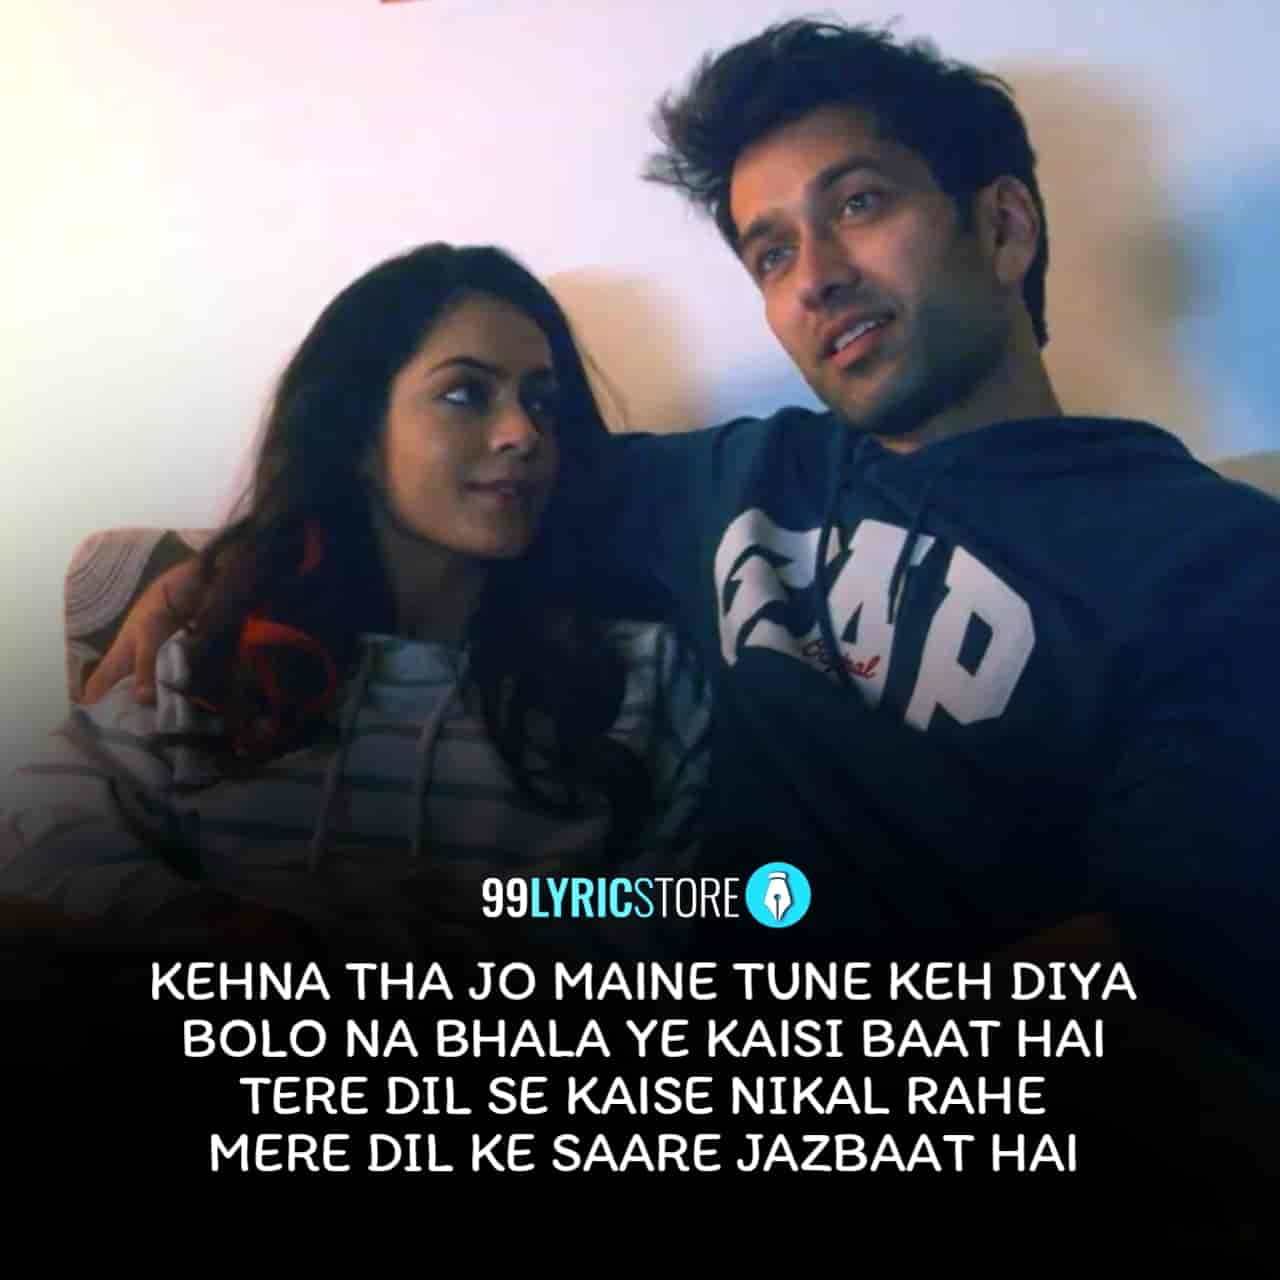 Vishal Mishra given his voice in the beautiful romantic song 'Dil Ko Tujhpe Pyaar' from album Never Kiss Your Best Friend. Nakuul Mehta and Anya Singh are featuring in this song as a lead roles. Music of this song given are Vishal Mishra and Jee Na Punga song lyrics are penned by Kaushal Kishore and Vishal Mishra. This song is presented by Zee5 label.